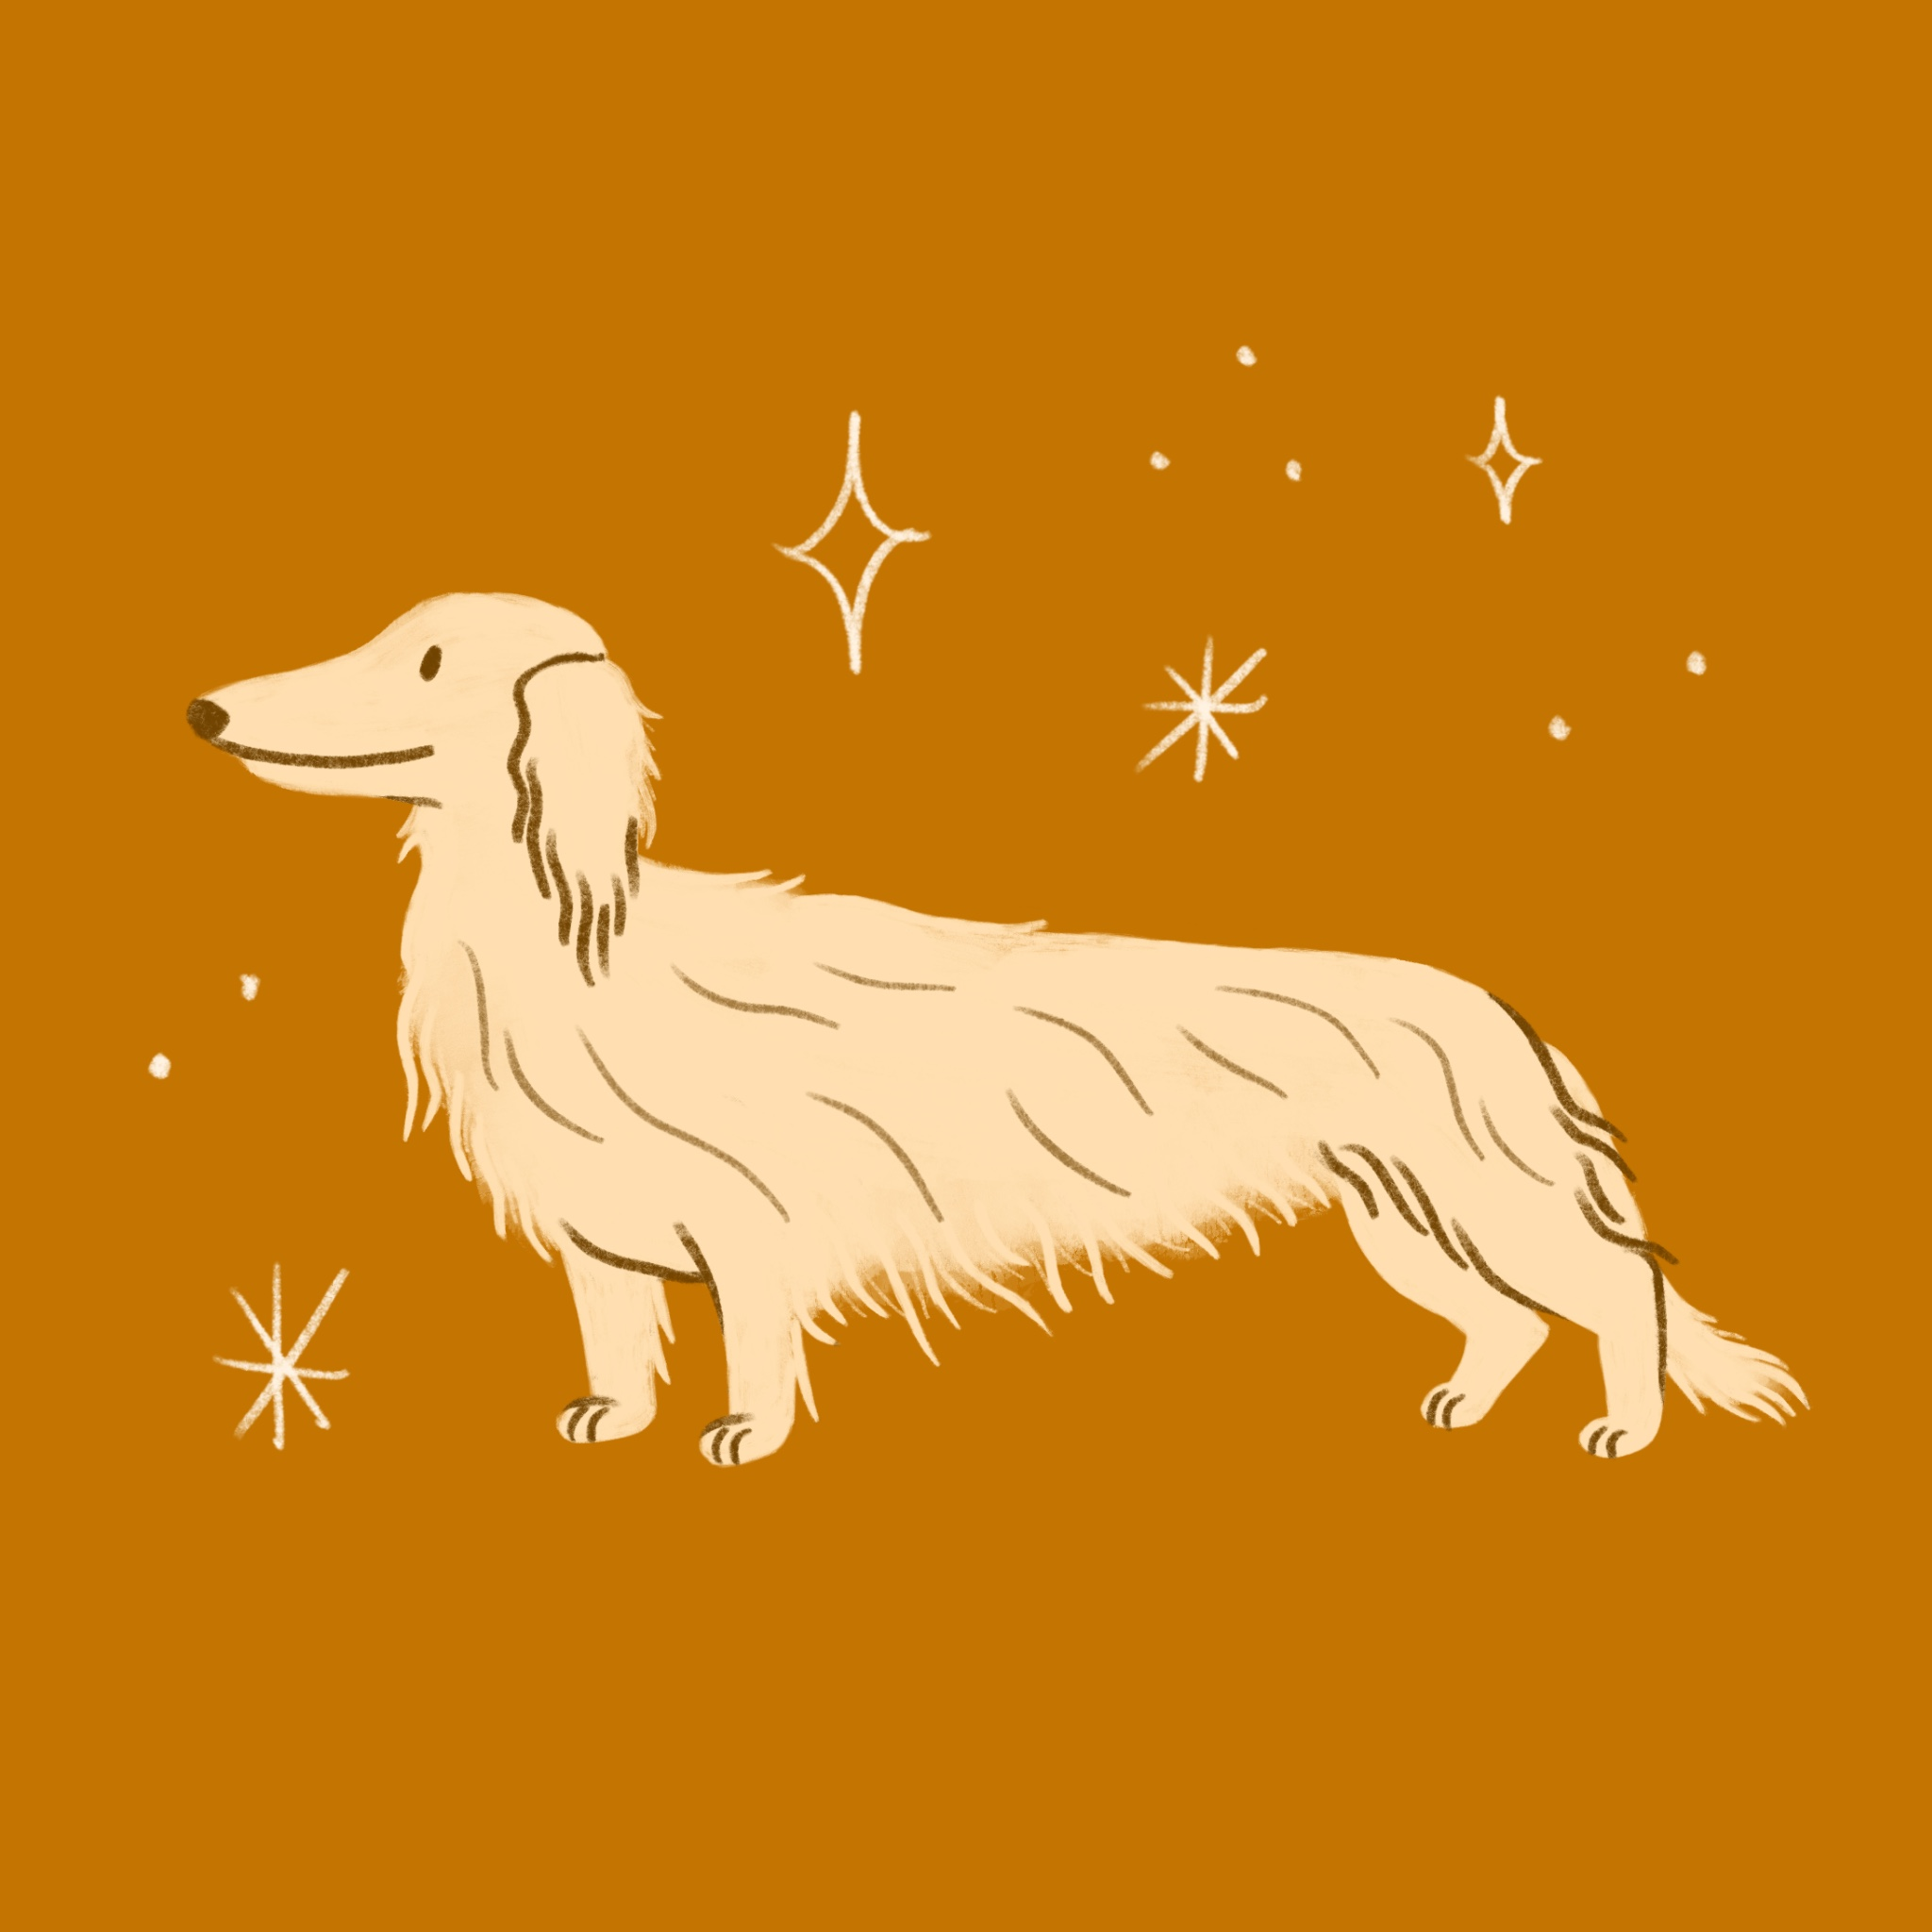 An illustration of a long haired Dachshund dog